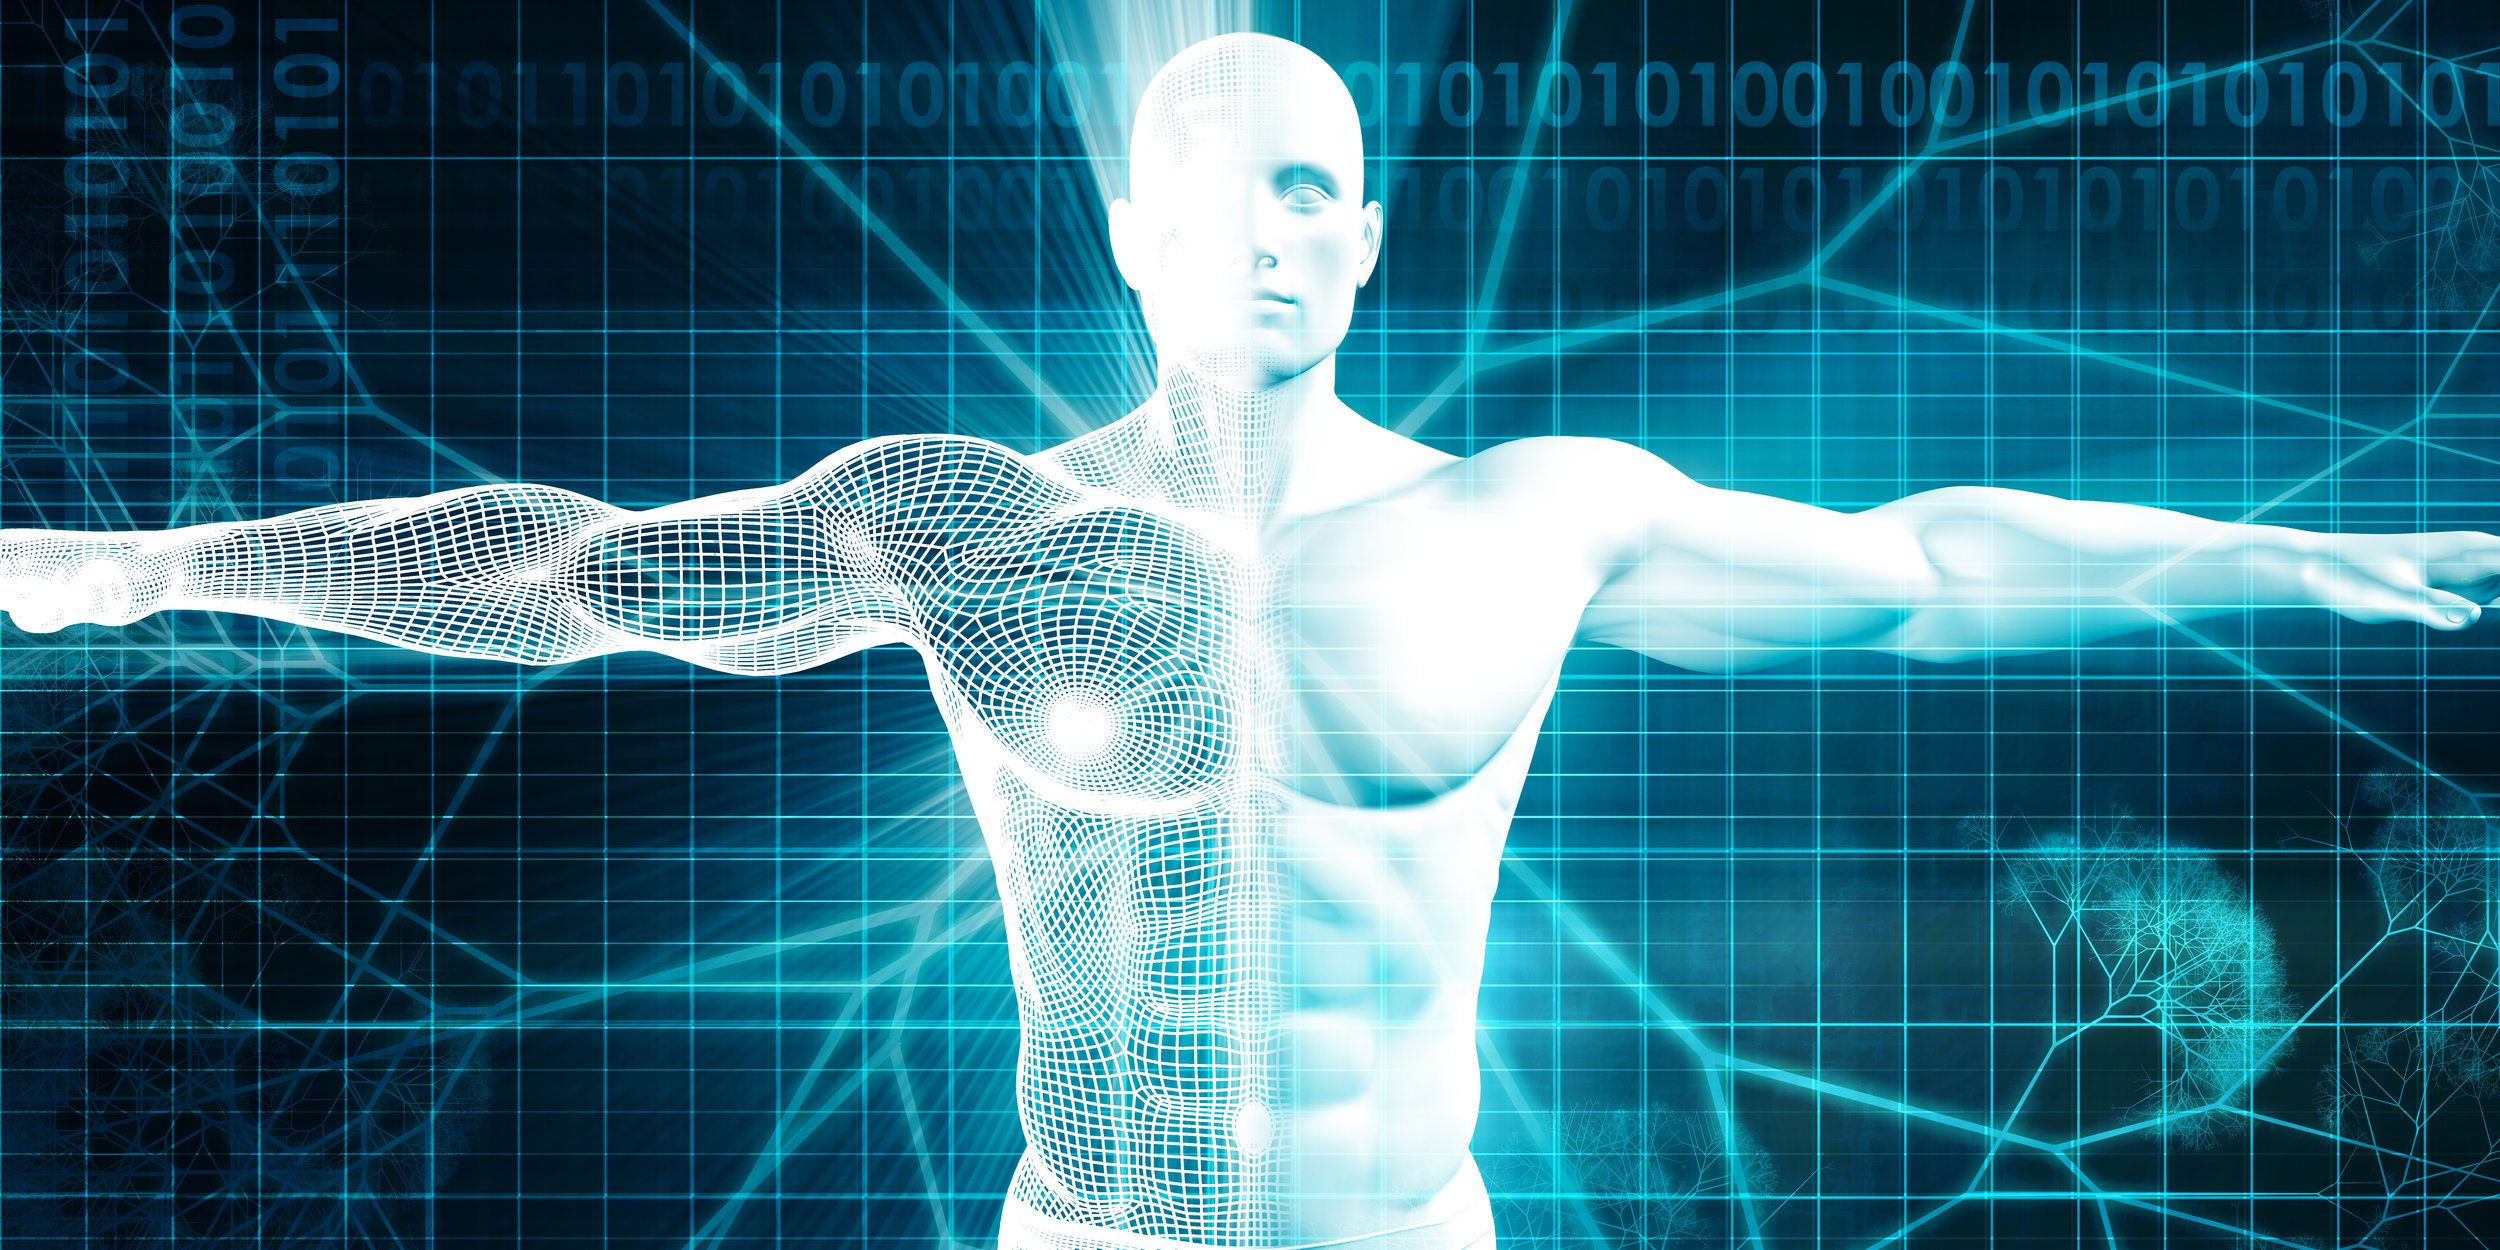 Human Body Life Science Funding